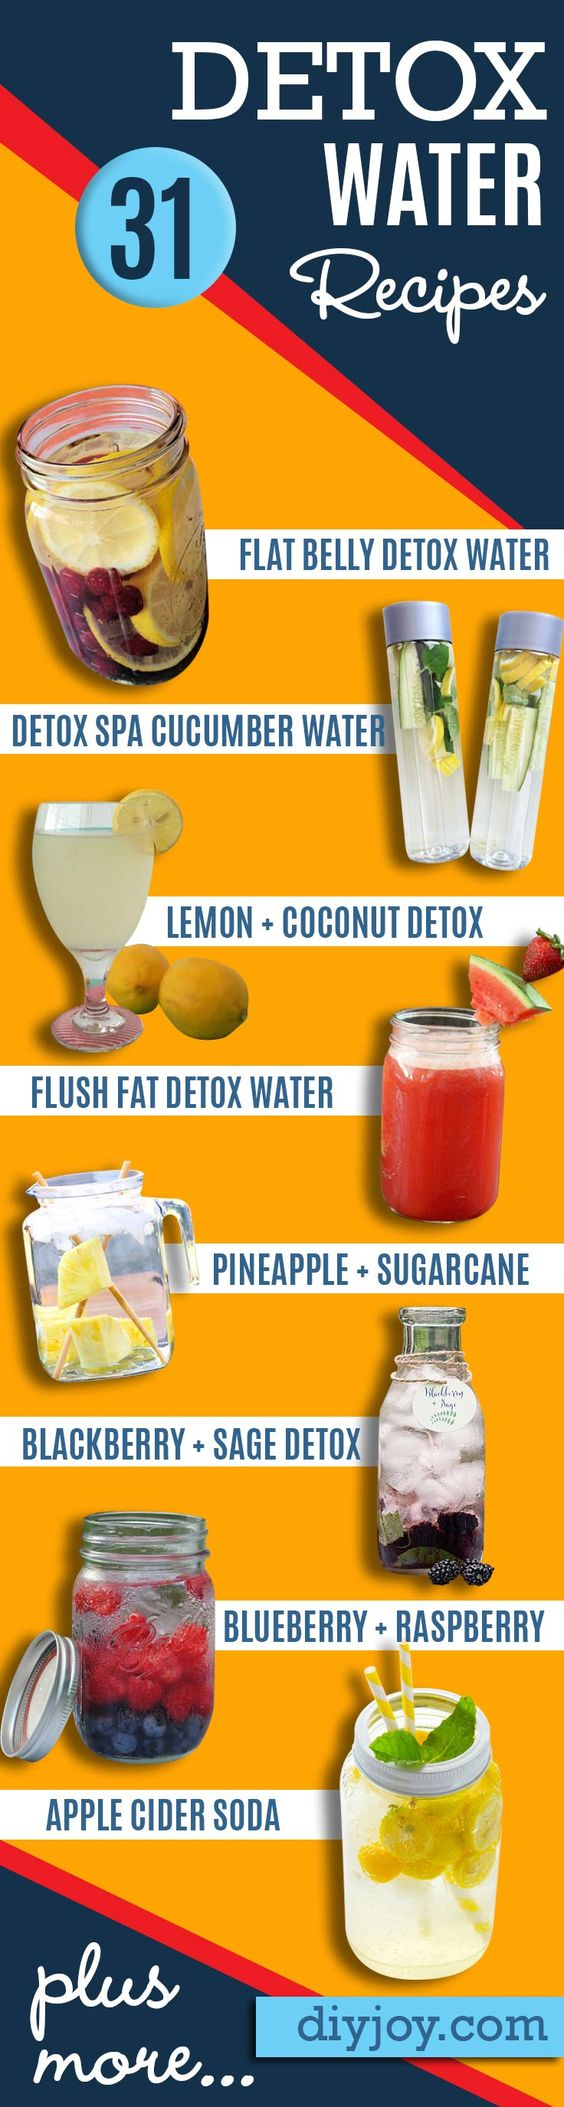 Lose weight by increasing water intake picture 3